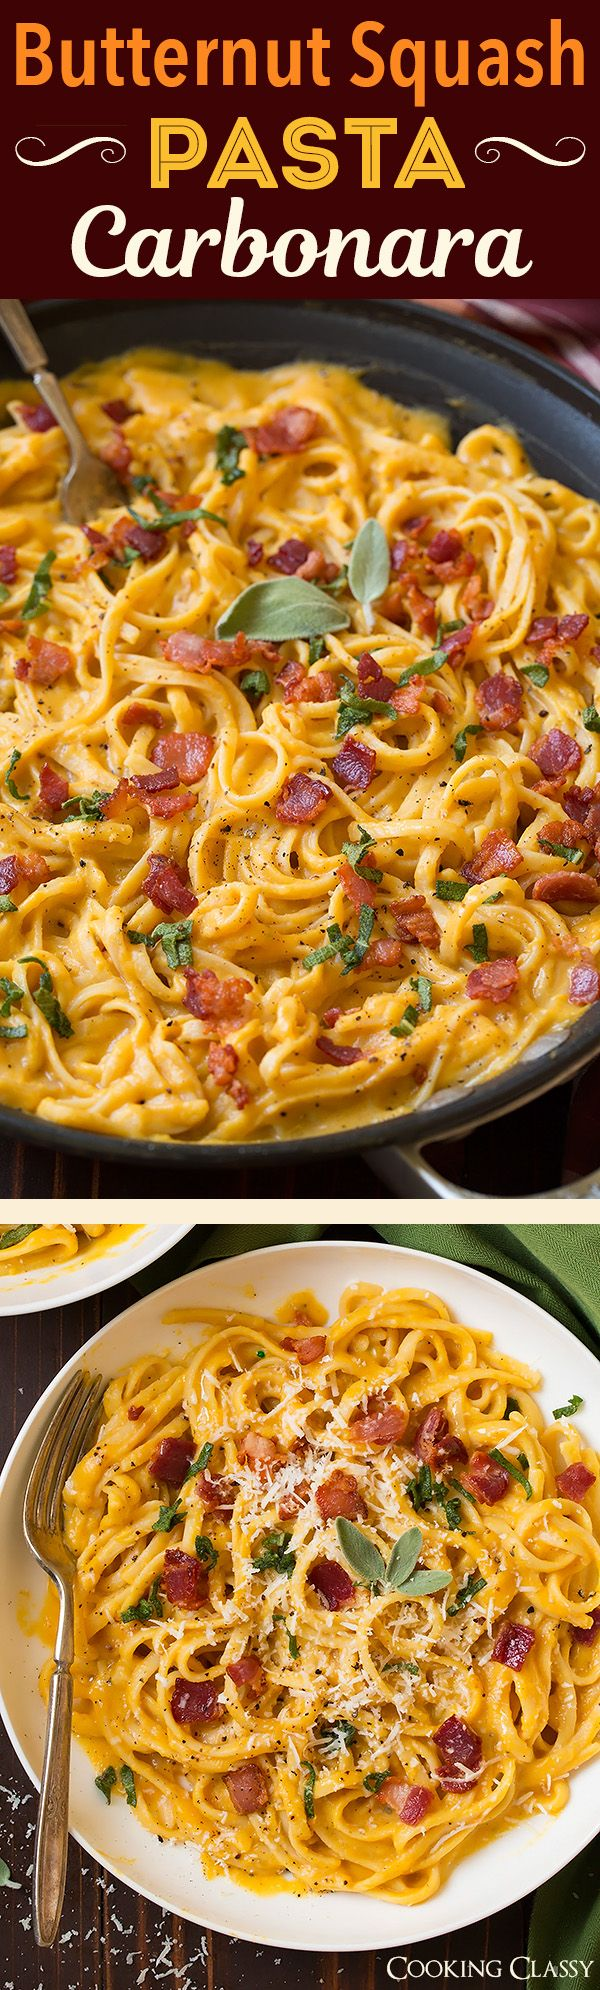 Butternut Squash Pasta Carbonara - this was delicious! Perfect fall meal!